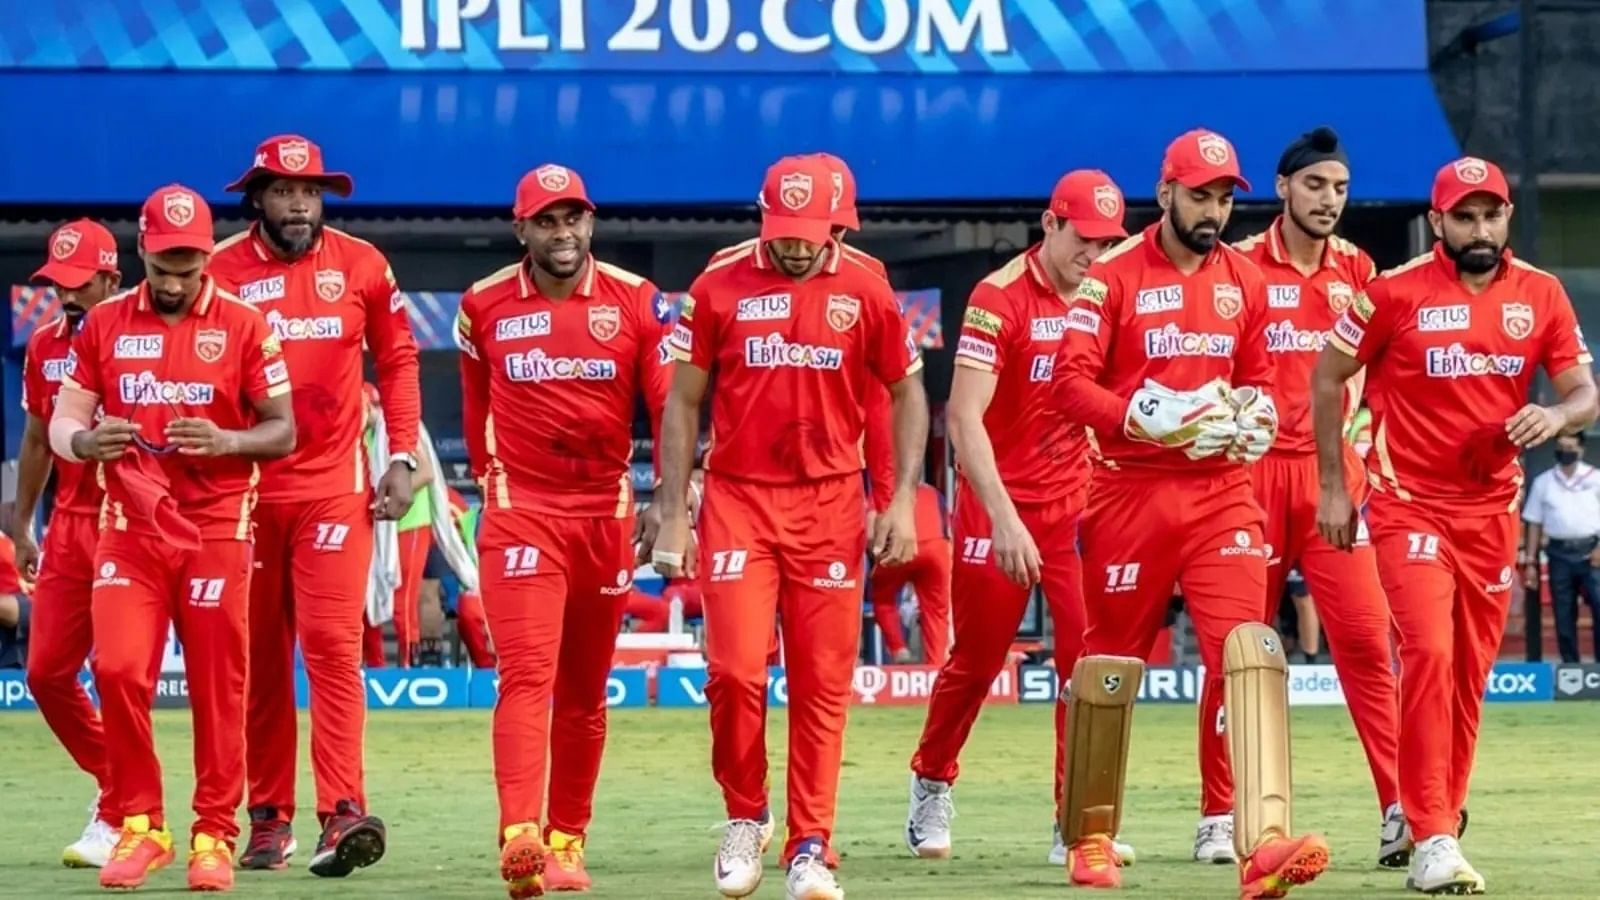 IPL 2021: Punjab Kings (PBKS) Squad, Schedule, Updated Time And Venue